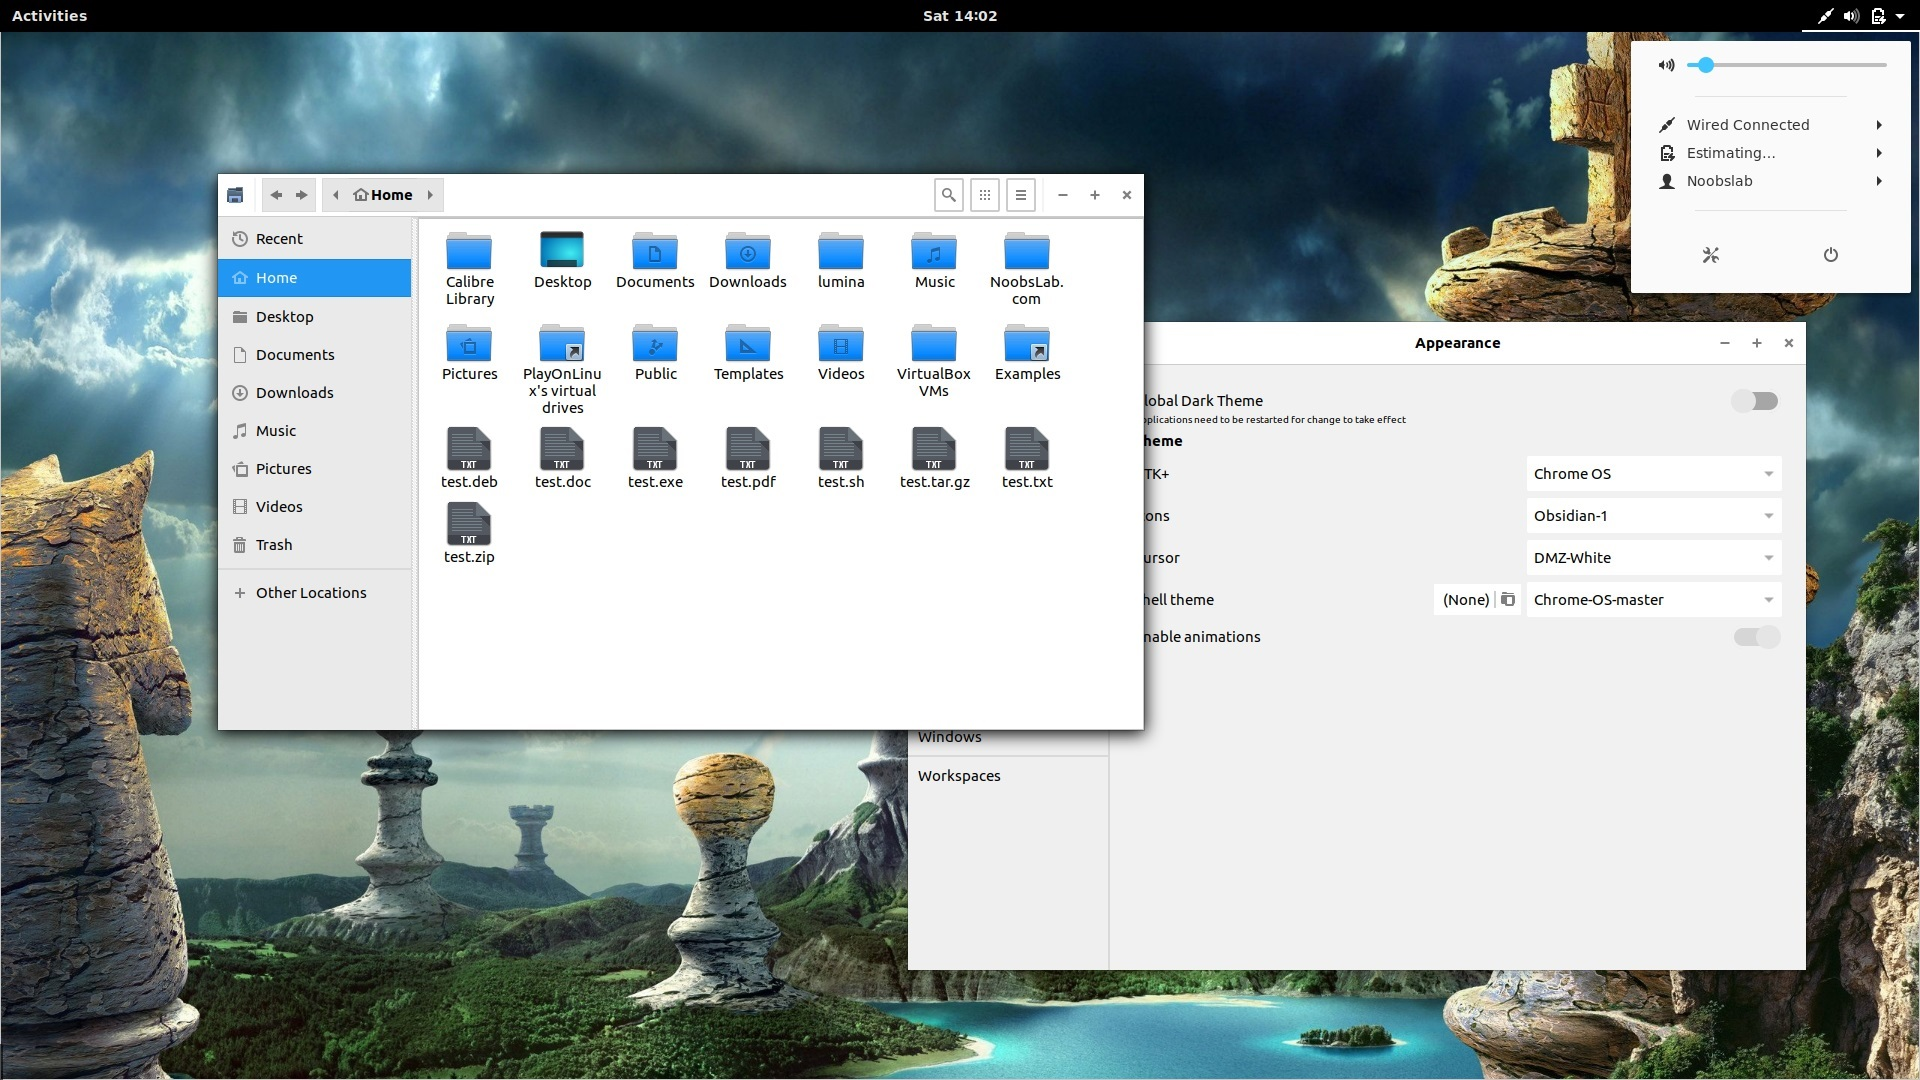 Heard Of Chrome OS But Never Tried? Here Is The Chrome OS Theme For